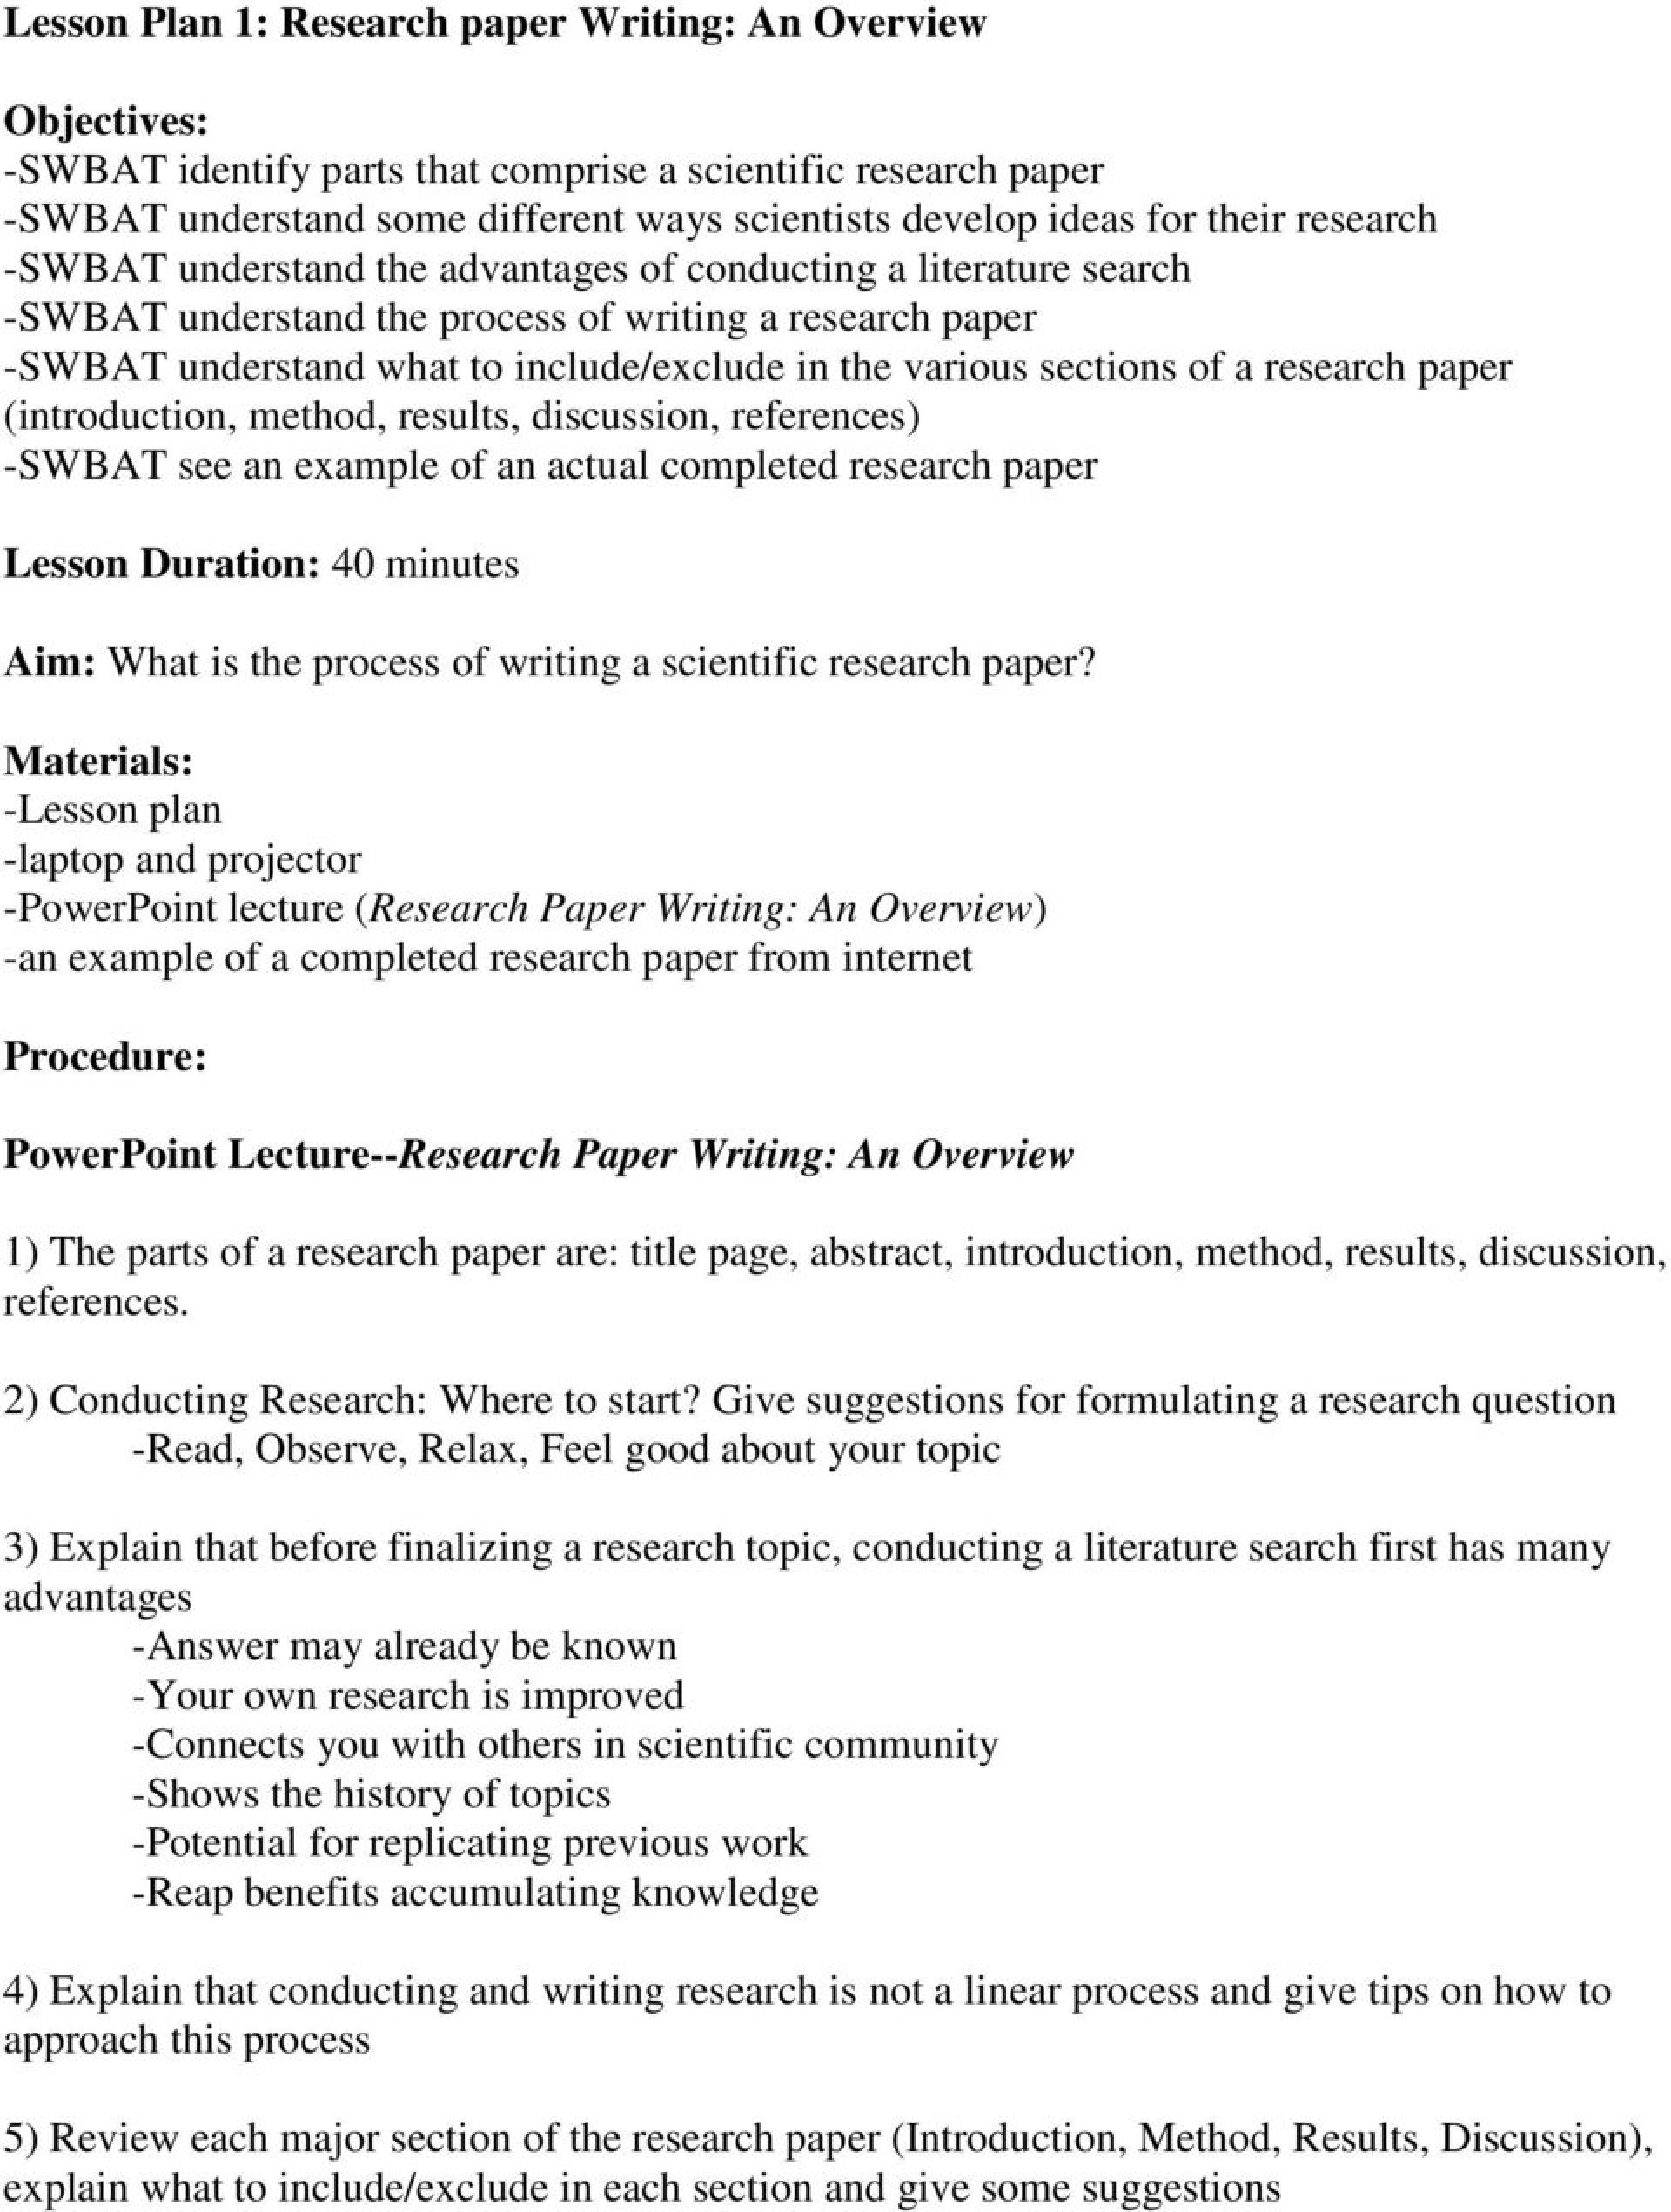 006 Page 1 Research Paper How To Write Results And Discussion Surprising In The Section Of A Quantitative 1920